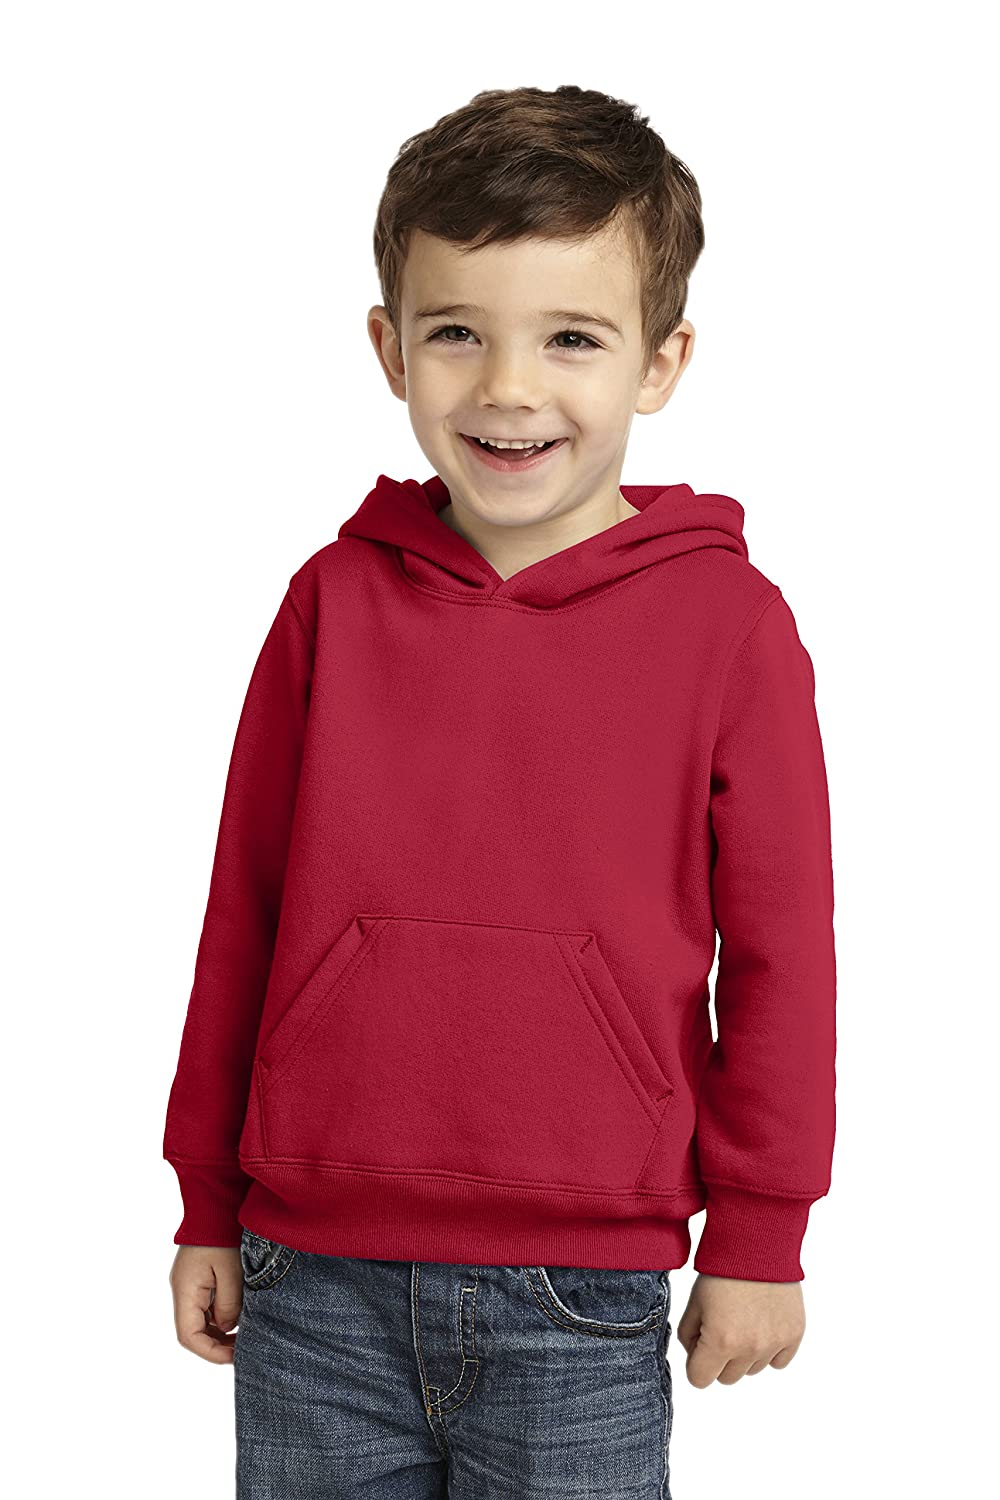 Custom Toddler Hoodies Design Your OWN Jersey Sweatshirt for Kids Hooded Team Sweaters